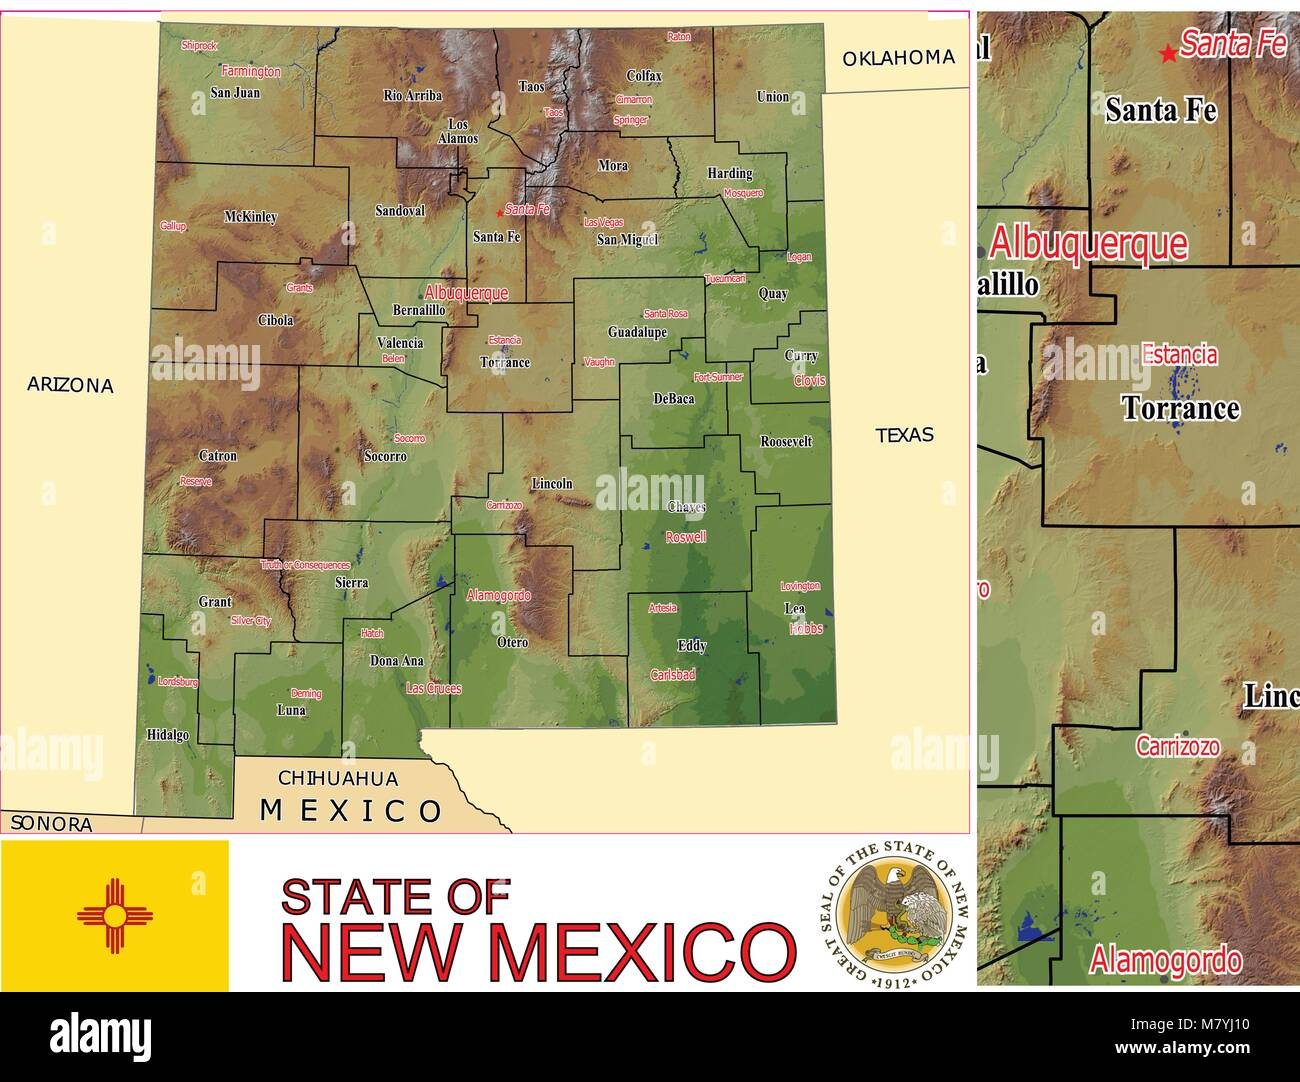 New Mexico State Counties Administrative divisions Stock Vector Art ...